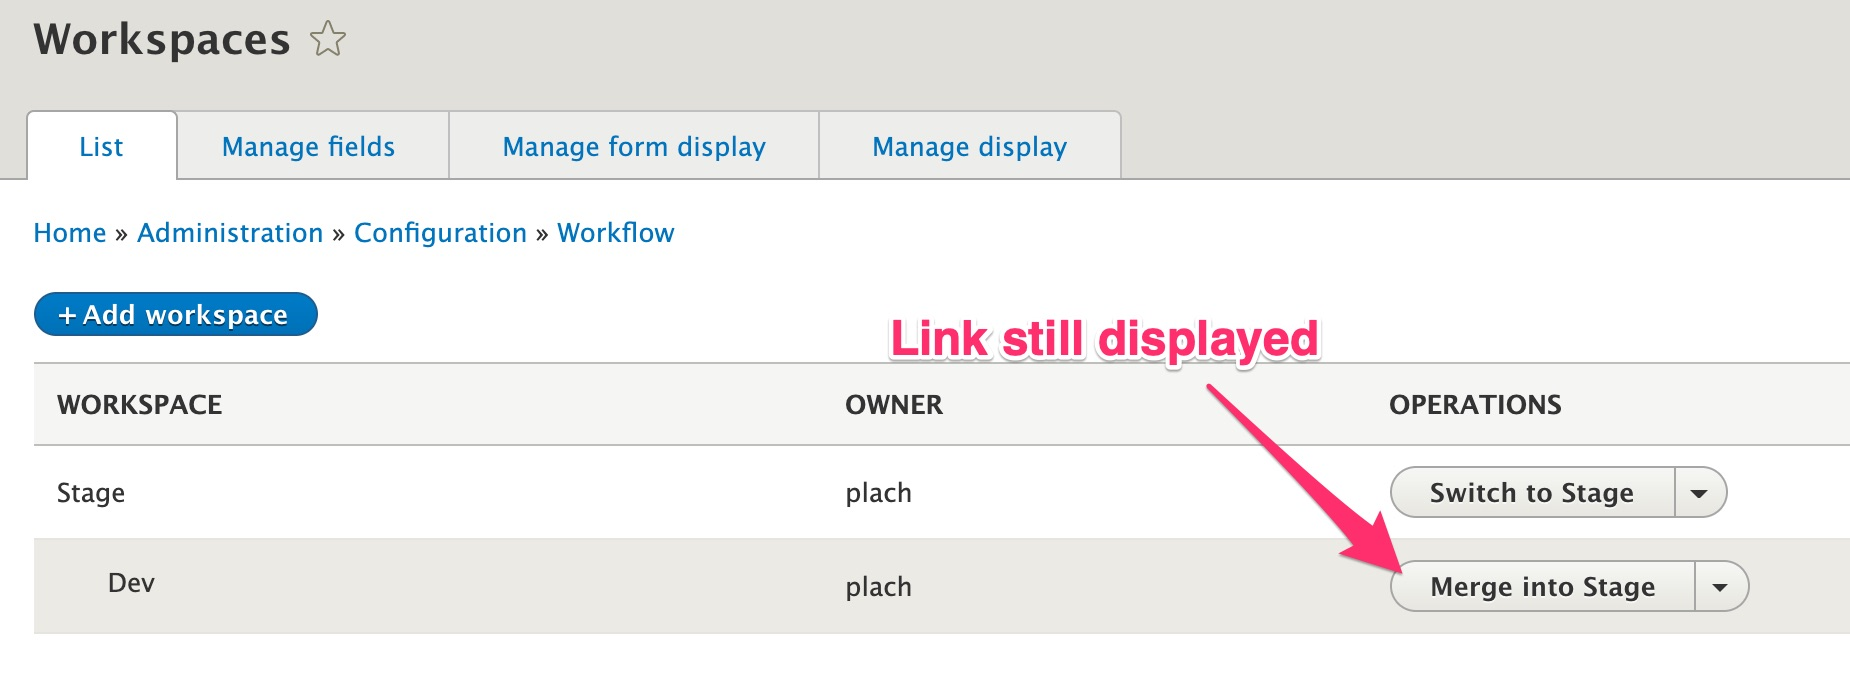 Add the ability to create sub-workspaces in order to enable